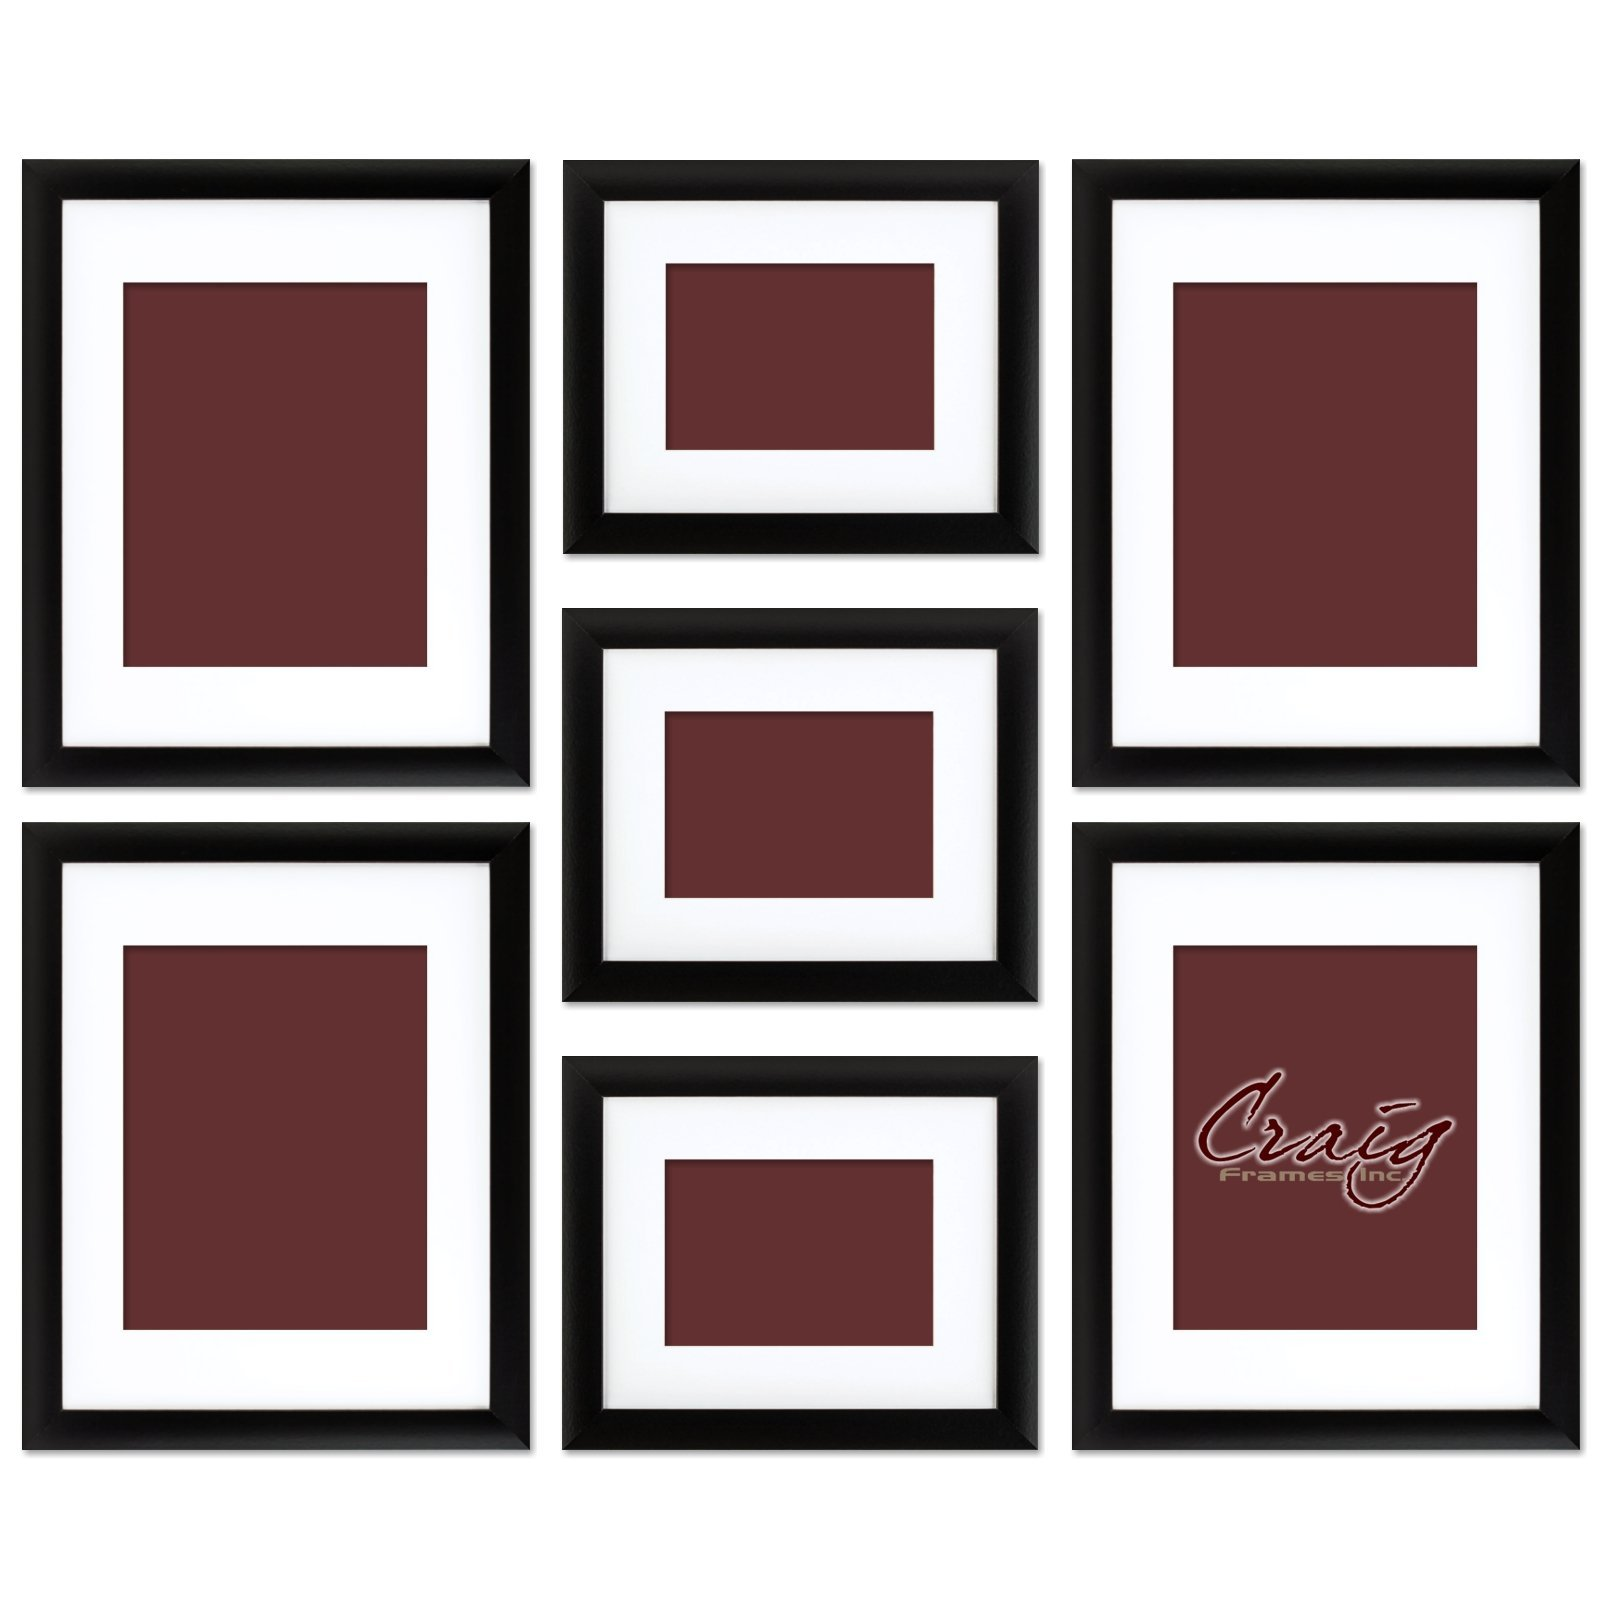 Craig Frames 1WB3BK Picture Frame 7-Piece Wall Set, Black Frames, White Display Mats by Craig Frames